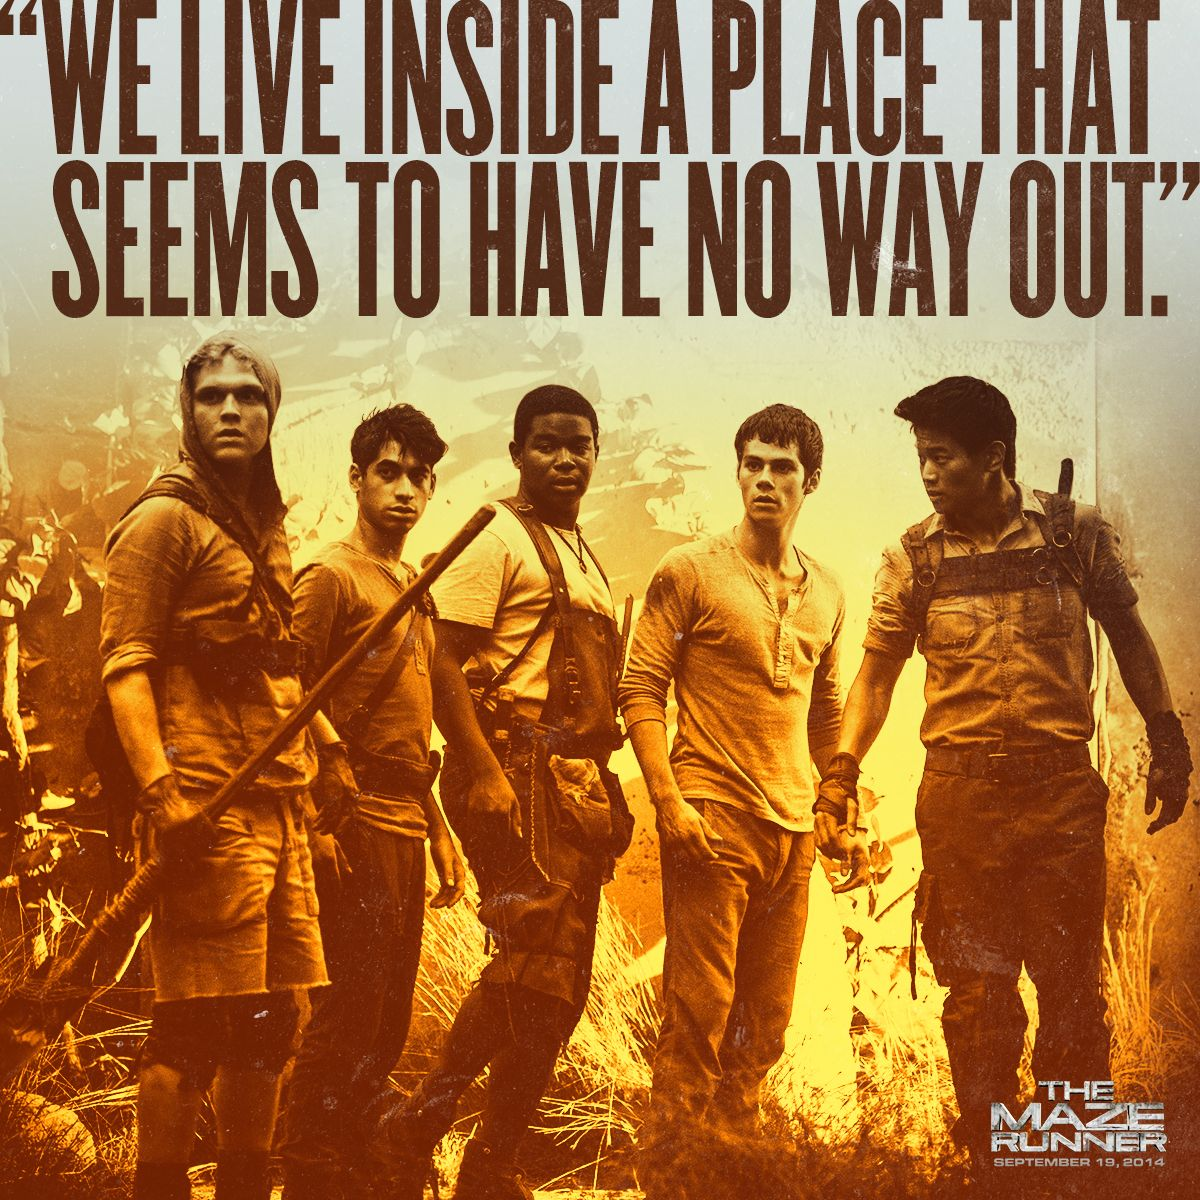 Saga El Corredor Del Laberinto Libros New Still From The Maze Runner Maze Runner Pinterest